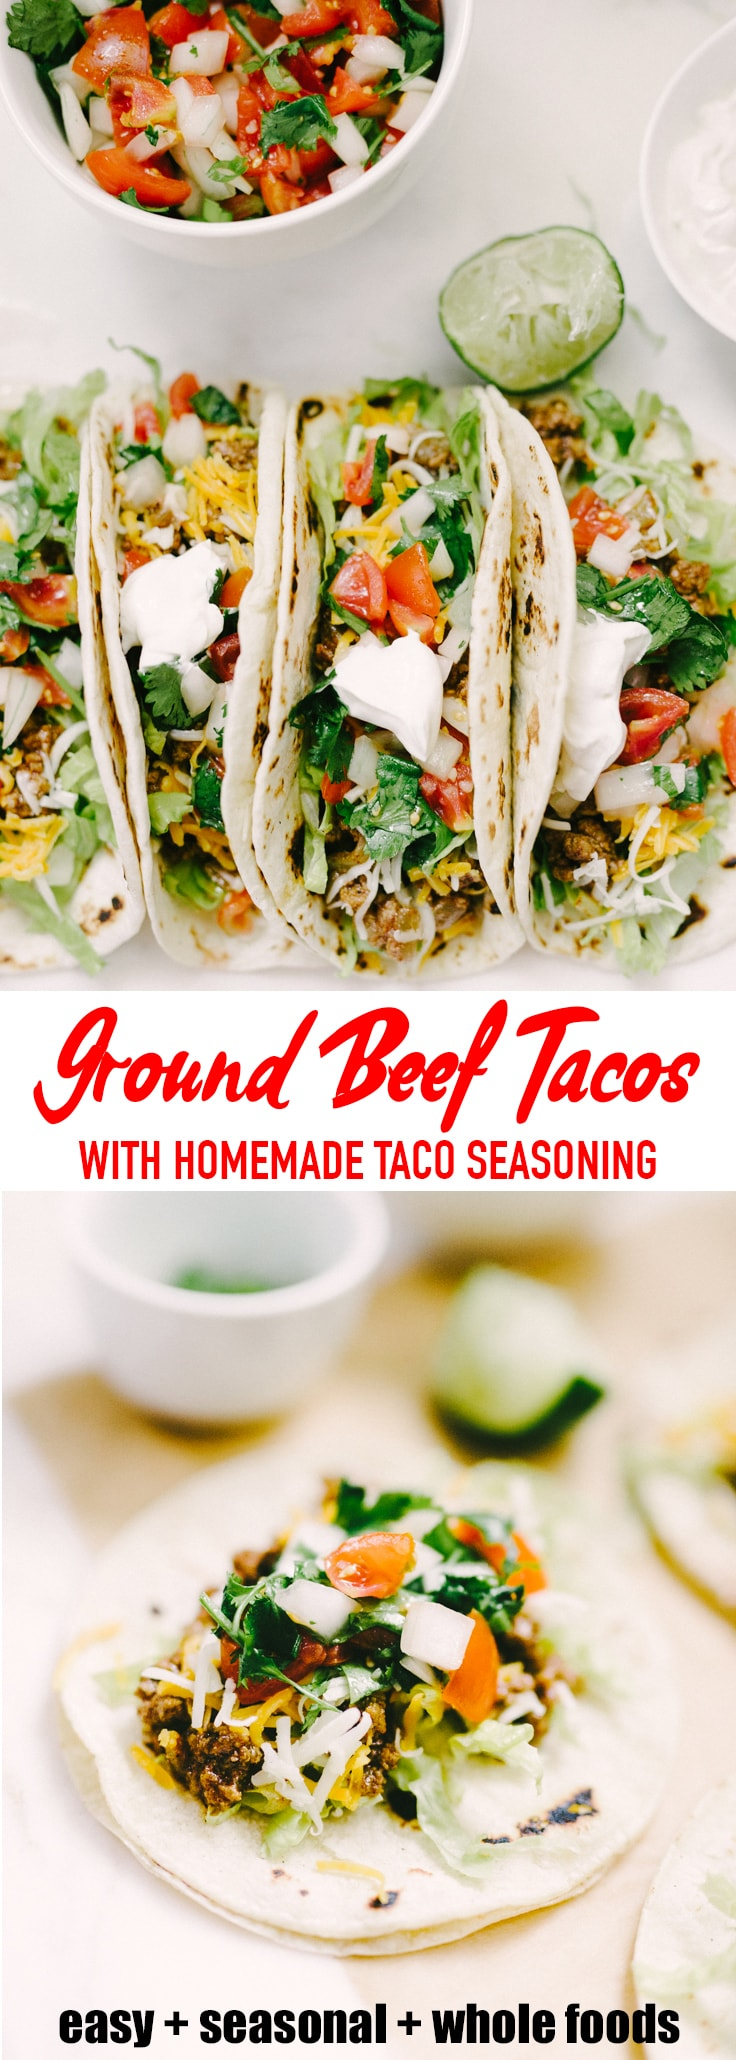 Ground beef tacos are one of our favorite easy and fast weeknight dinners. I made my own homemade taco seasoning and you should too. The process is simple, fast, and additive free! #homemade #tacoseasoning #tacos #beeftacos